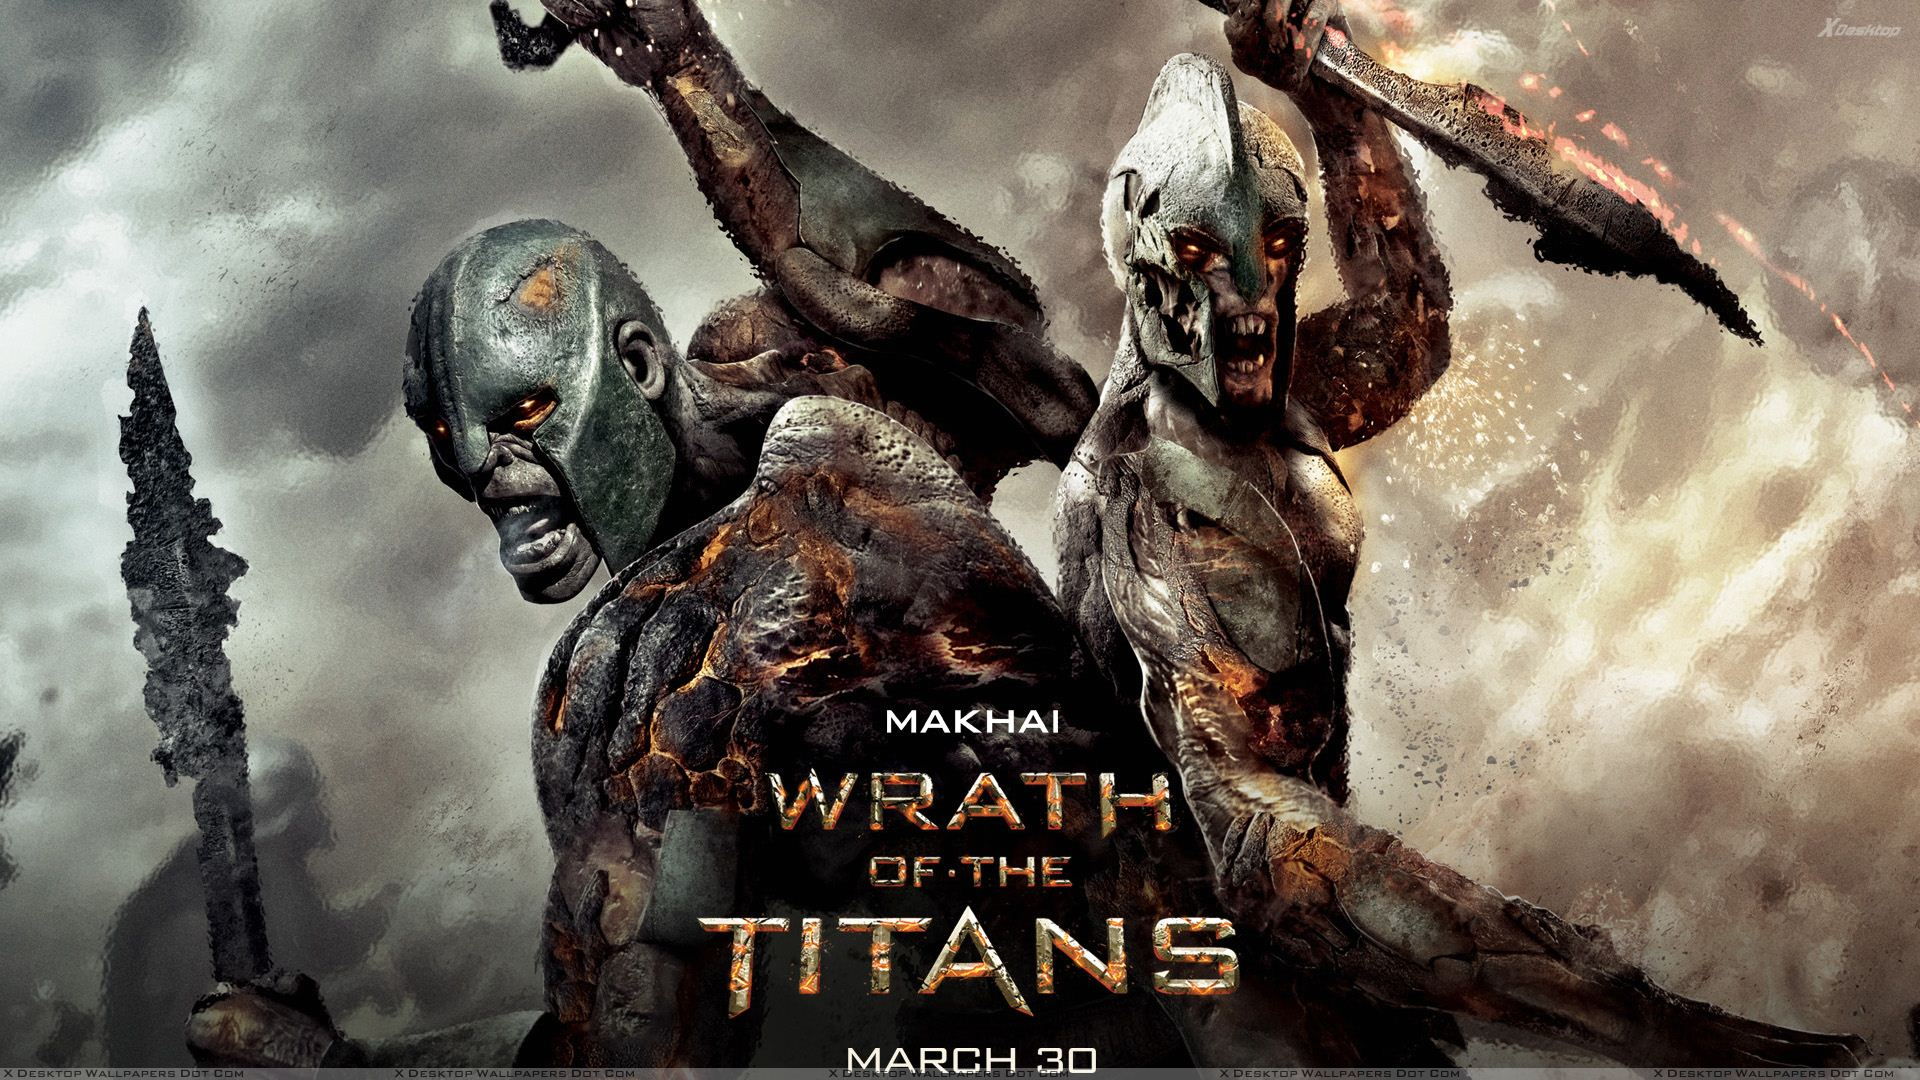 wrath of the titans wallpapers, photos & images in hd